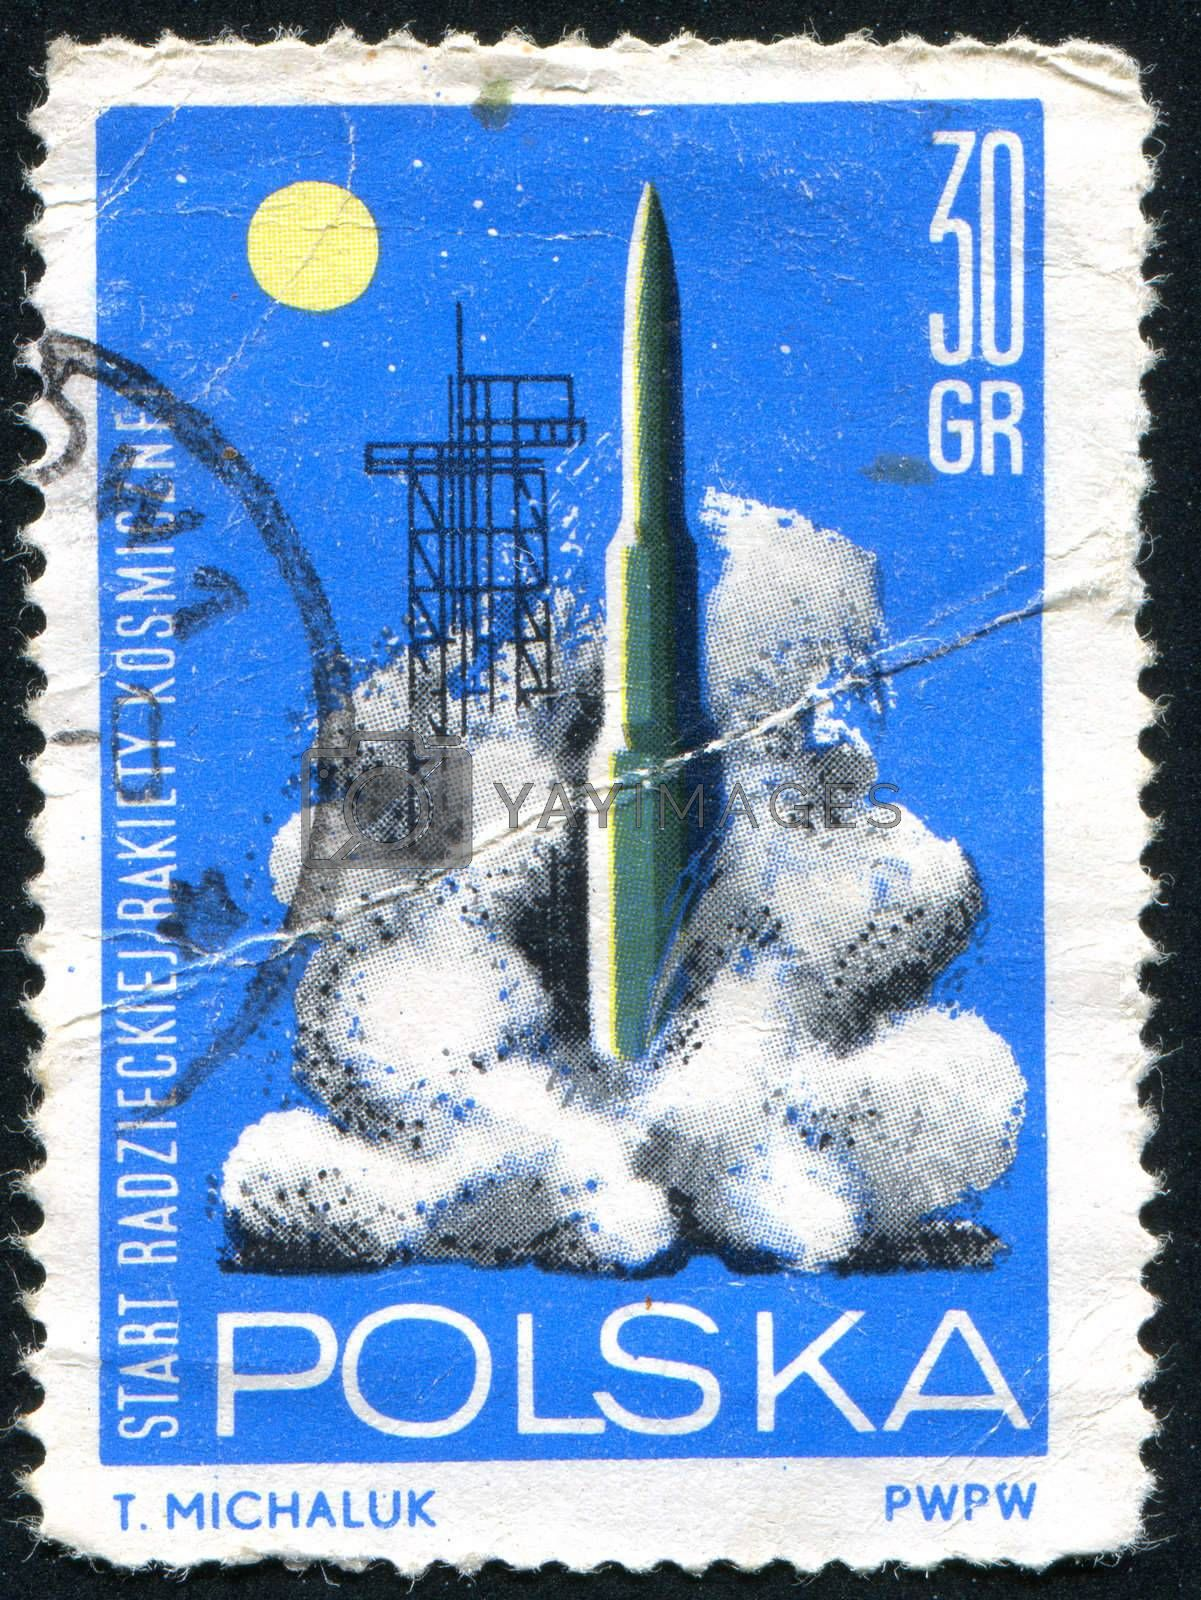 POLAND - CIRCA 1964: stamp printed by Poland, shows Launching of Russian rocket, circa 1964.